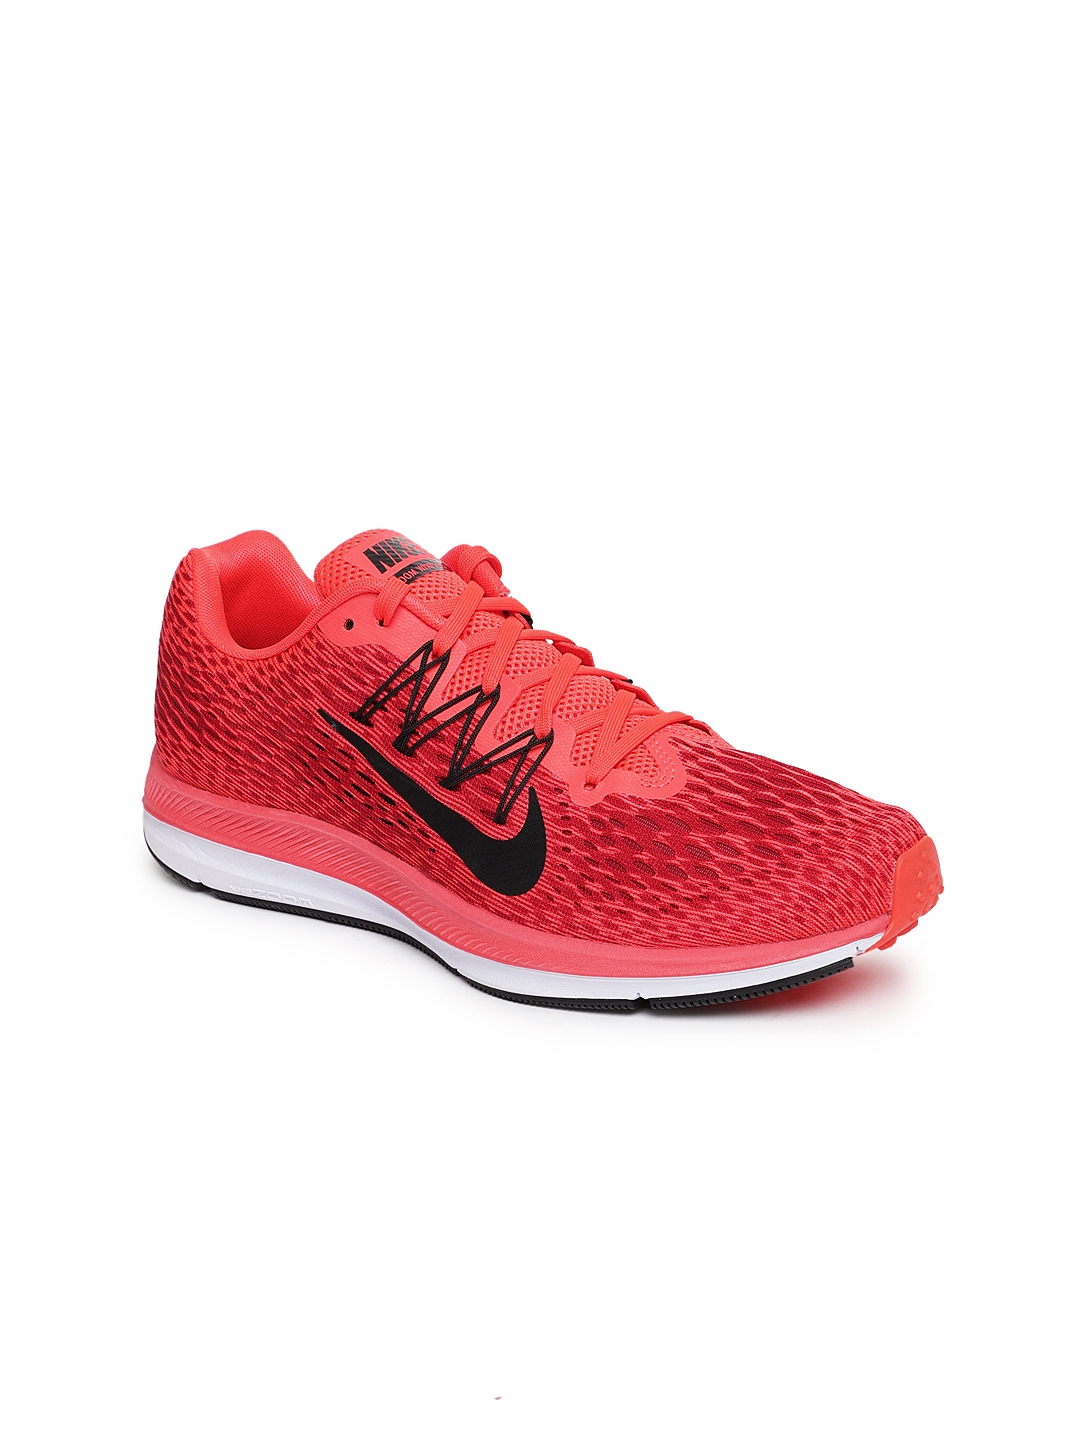 42bdf90fead9d Buy Nike Womens Air Zoom Winflo 5 Running Shoes - Sports Shoes for ...